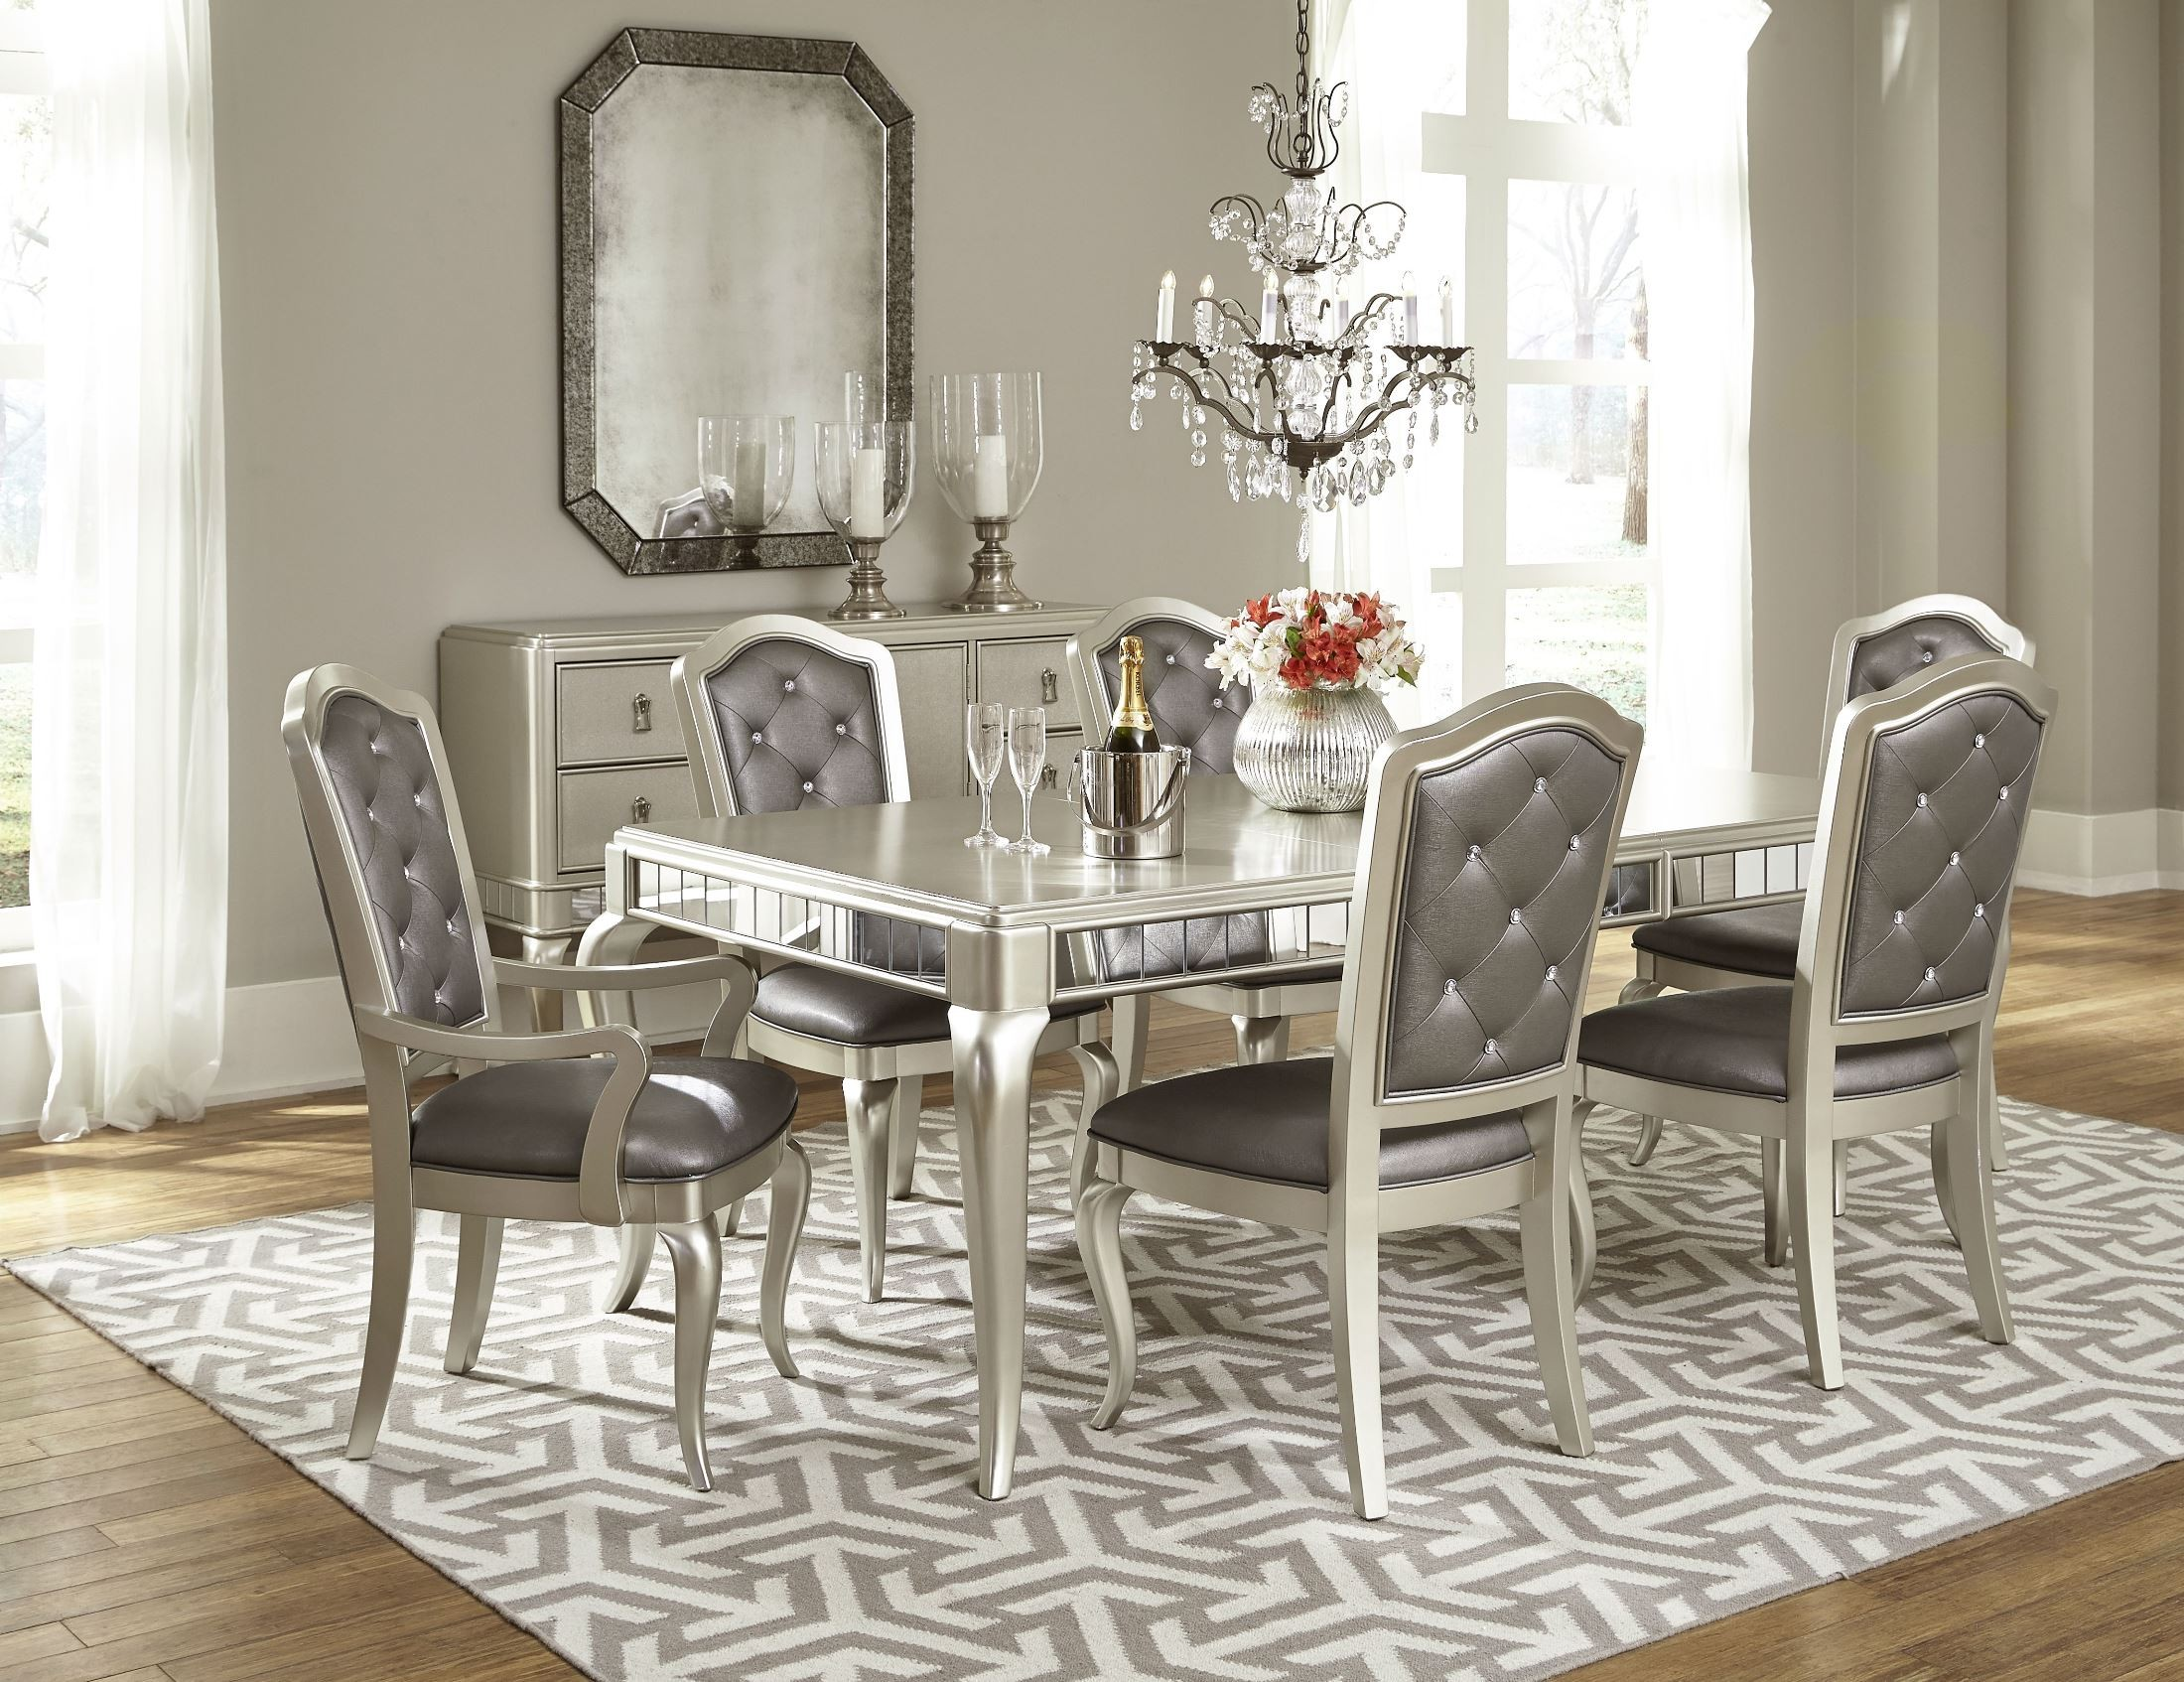 dining room sets. Diva Rectangular Extendable Leg Dining Room Set  791718 791717 from Samuel